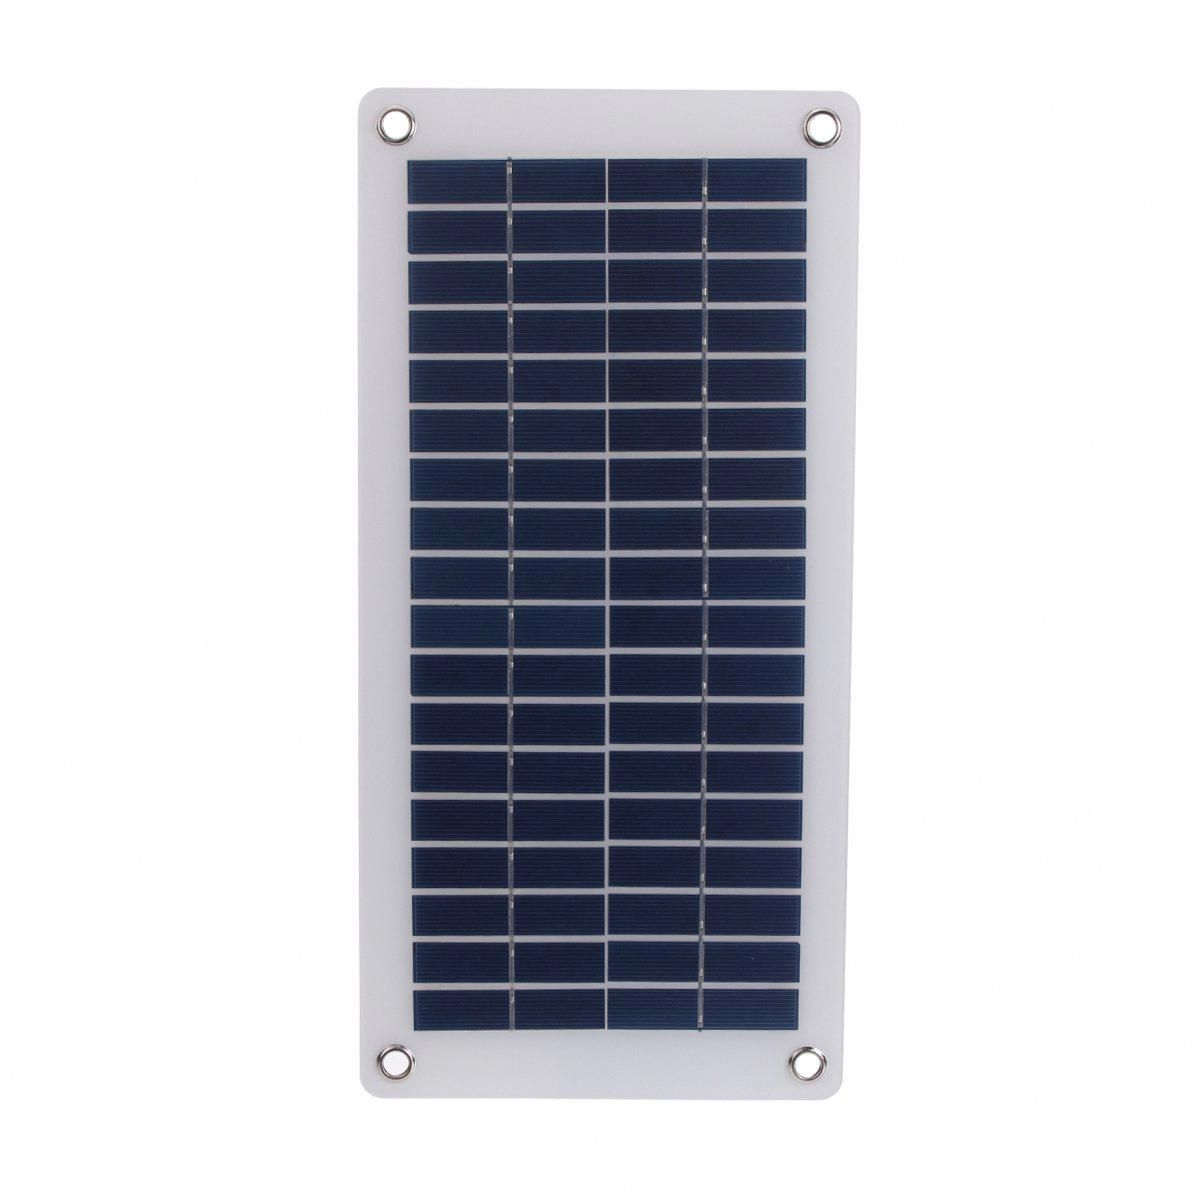 12v 9 2w Solar Panel Powered Kit System Semi Flexible Portable Polysilicon Solar Panels Solarpanels Solarenergy Solarpower Sol In 2020 Solar Panels Solar Solar Energy